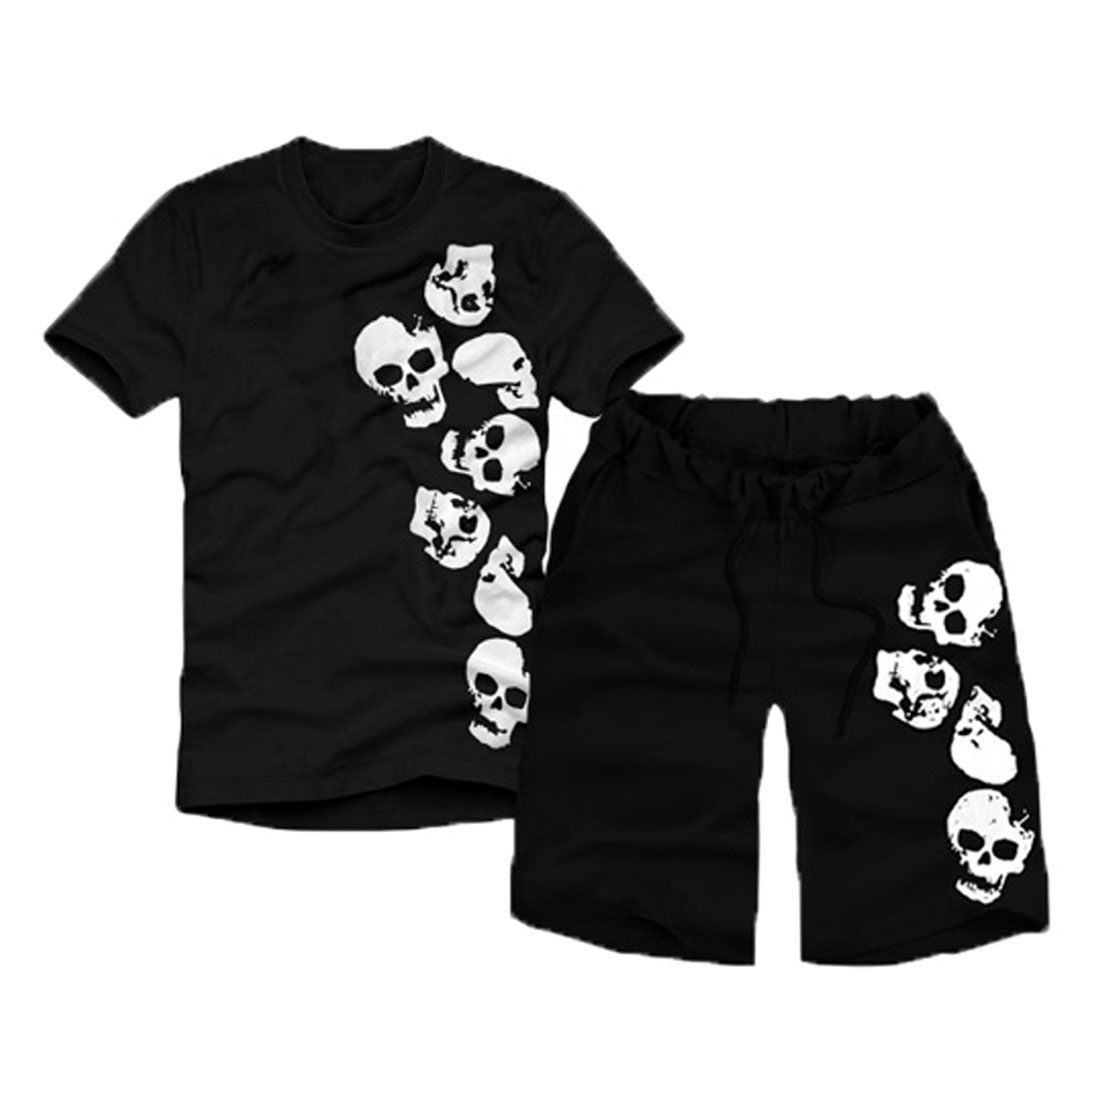 Men Short Sleeve Skulls Pattern T-Shirt w Adjustable Strap Waist Black Shorts S